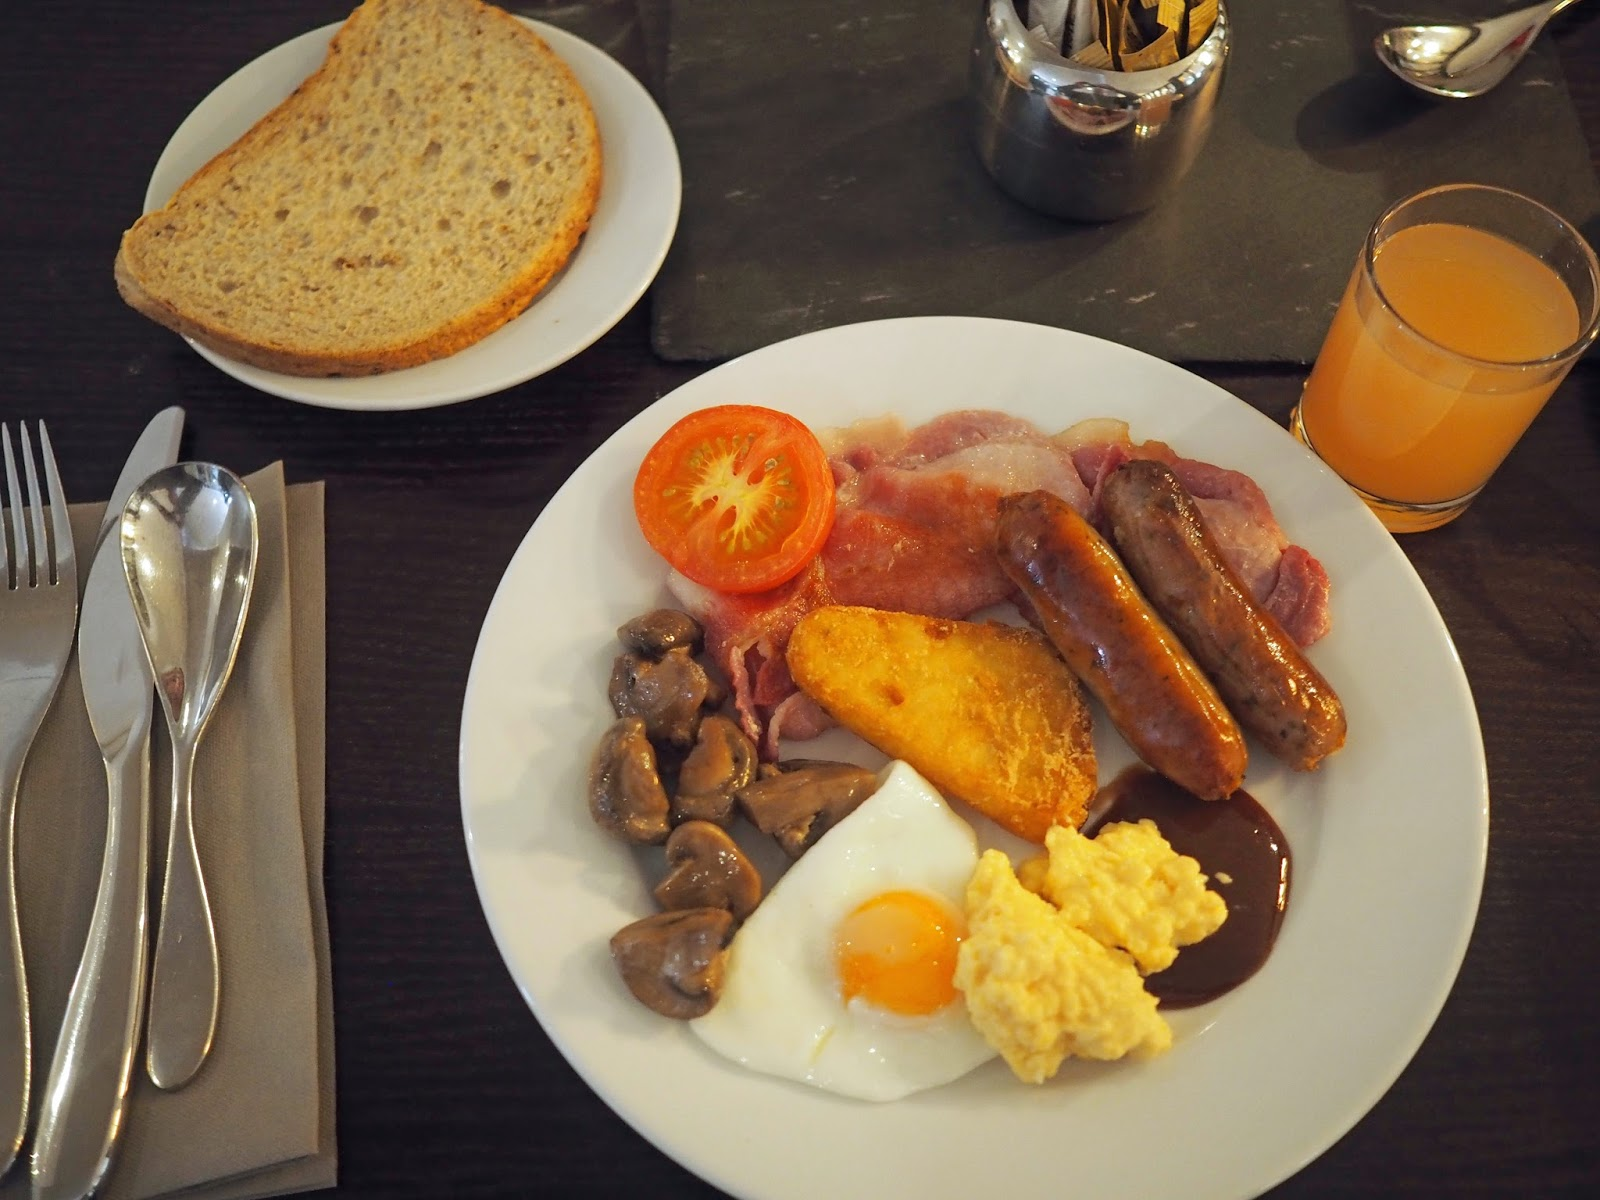 Cooked breakfast buffet, York city centre hotel, York. Monkbar